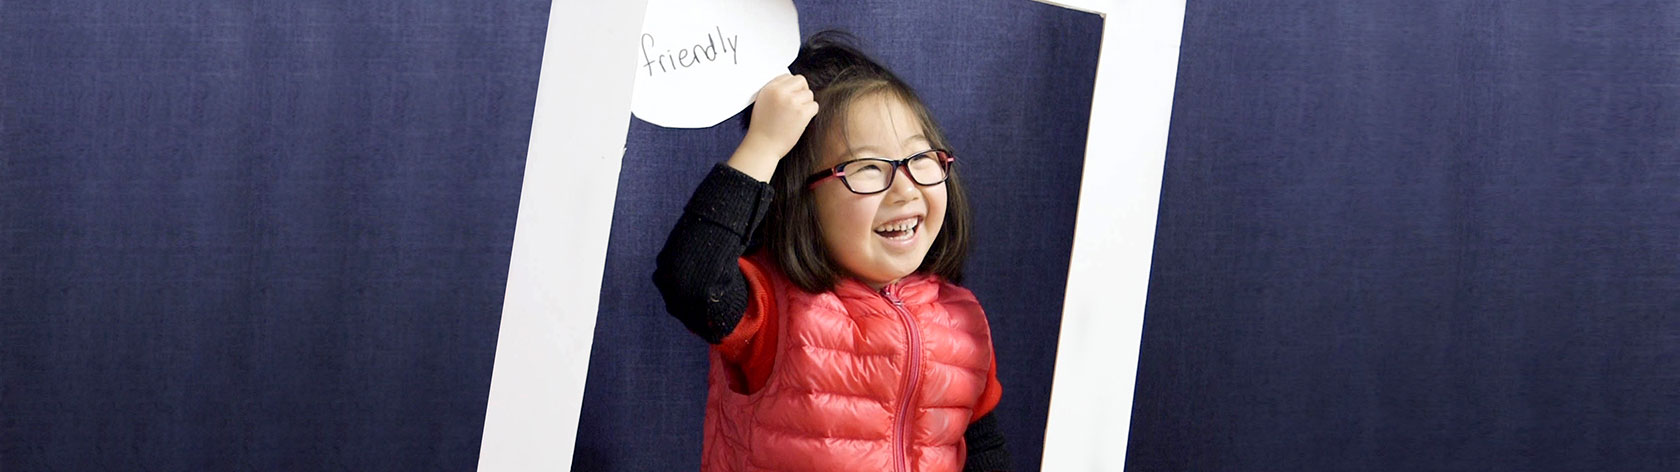 "Child smiling and holding up a card with the word ""friendly"""